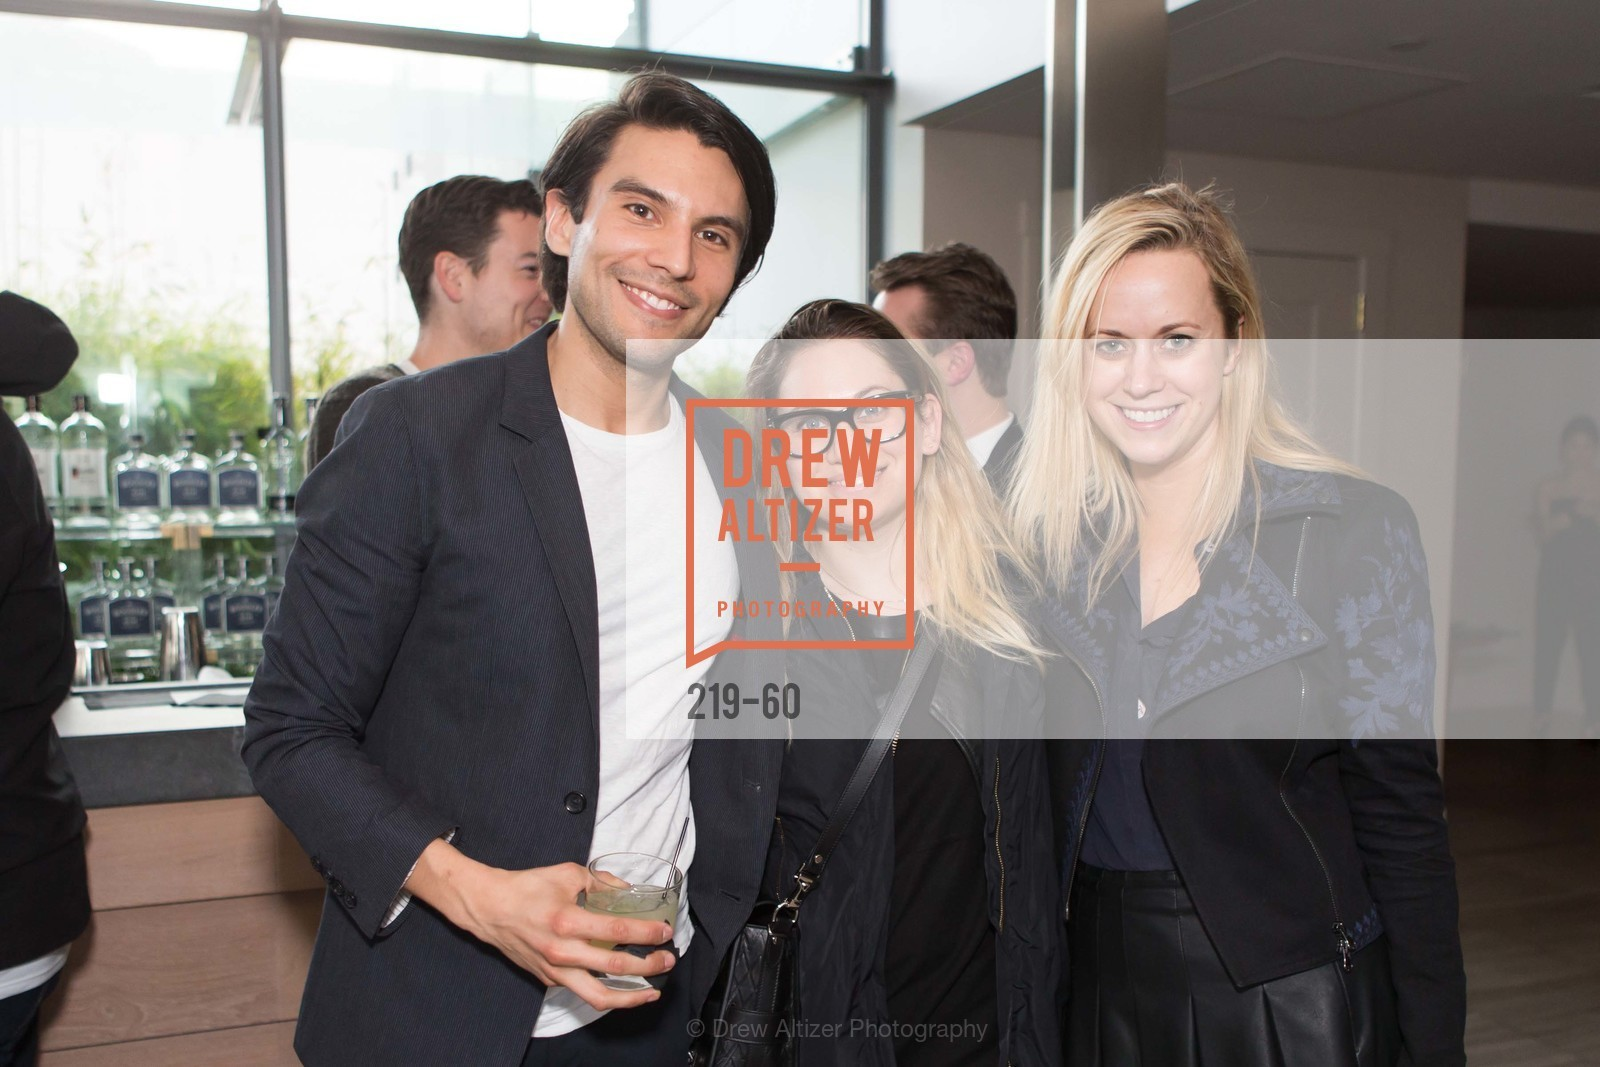 Carlos Rivera-Anaya, Hillary Sloan, Leanne Grit, MR PORTER Celebrate The San Francisco Issue of The Journal, The Battery Rooftop - The Battery SF, April 23rd, 2015,Drew Altizer, Drew Altizer Photography, full-service agency, private events, San Francisco photographer, photographer california